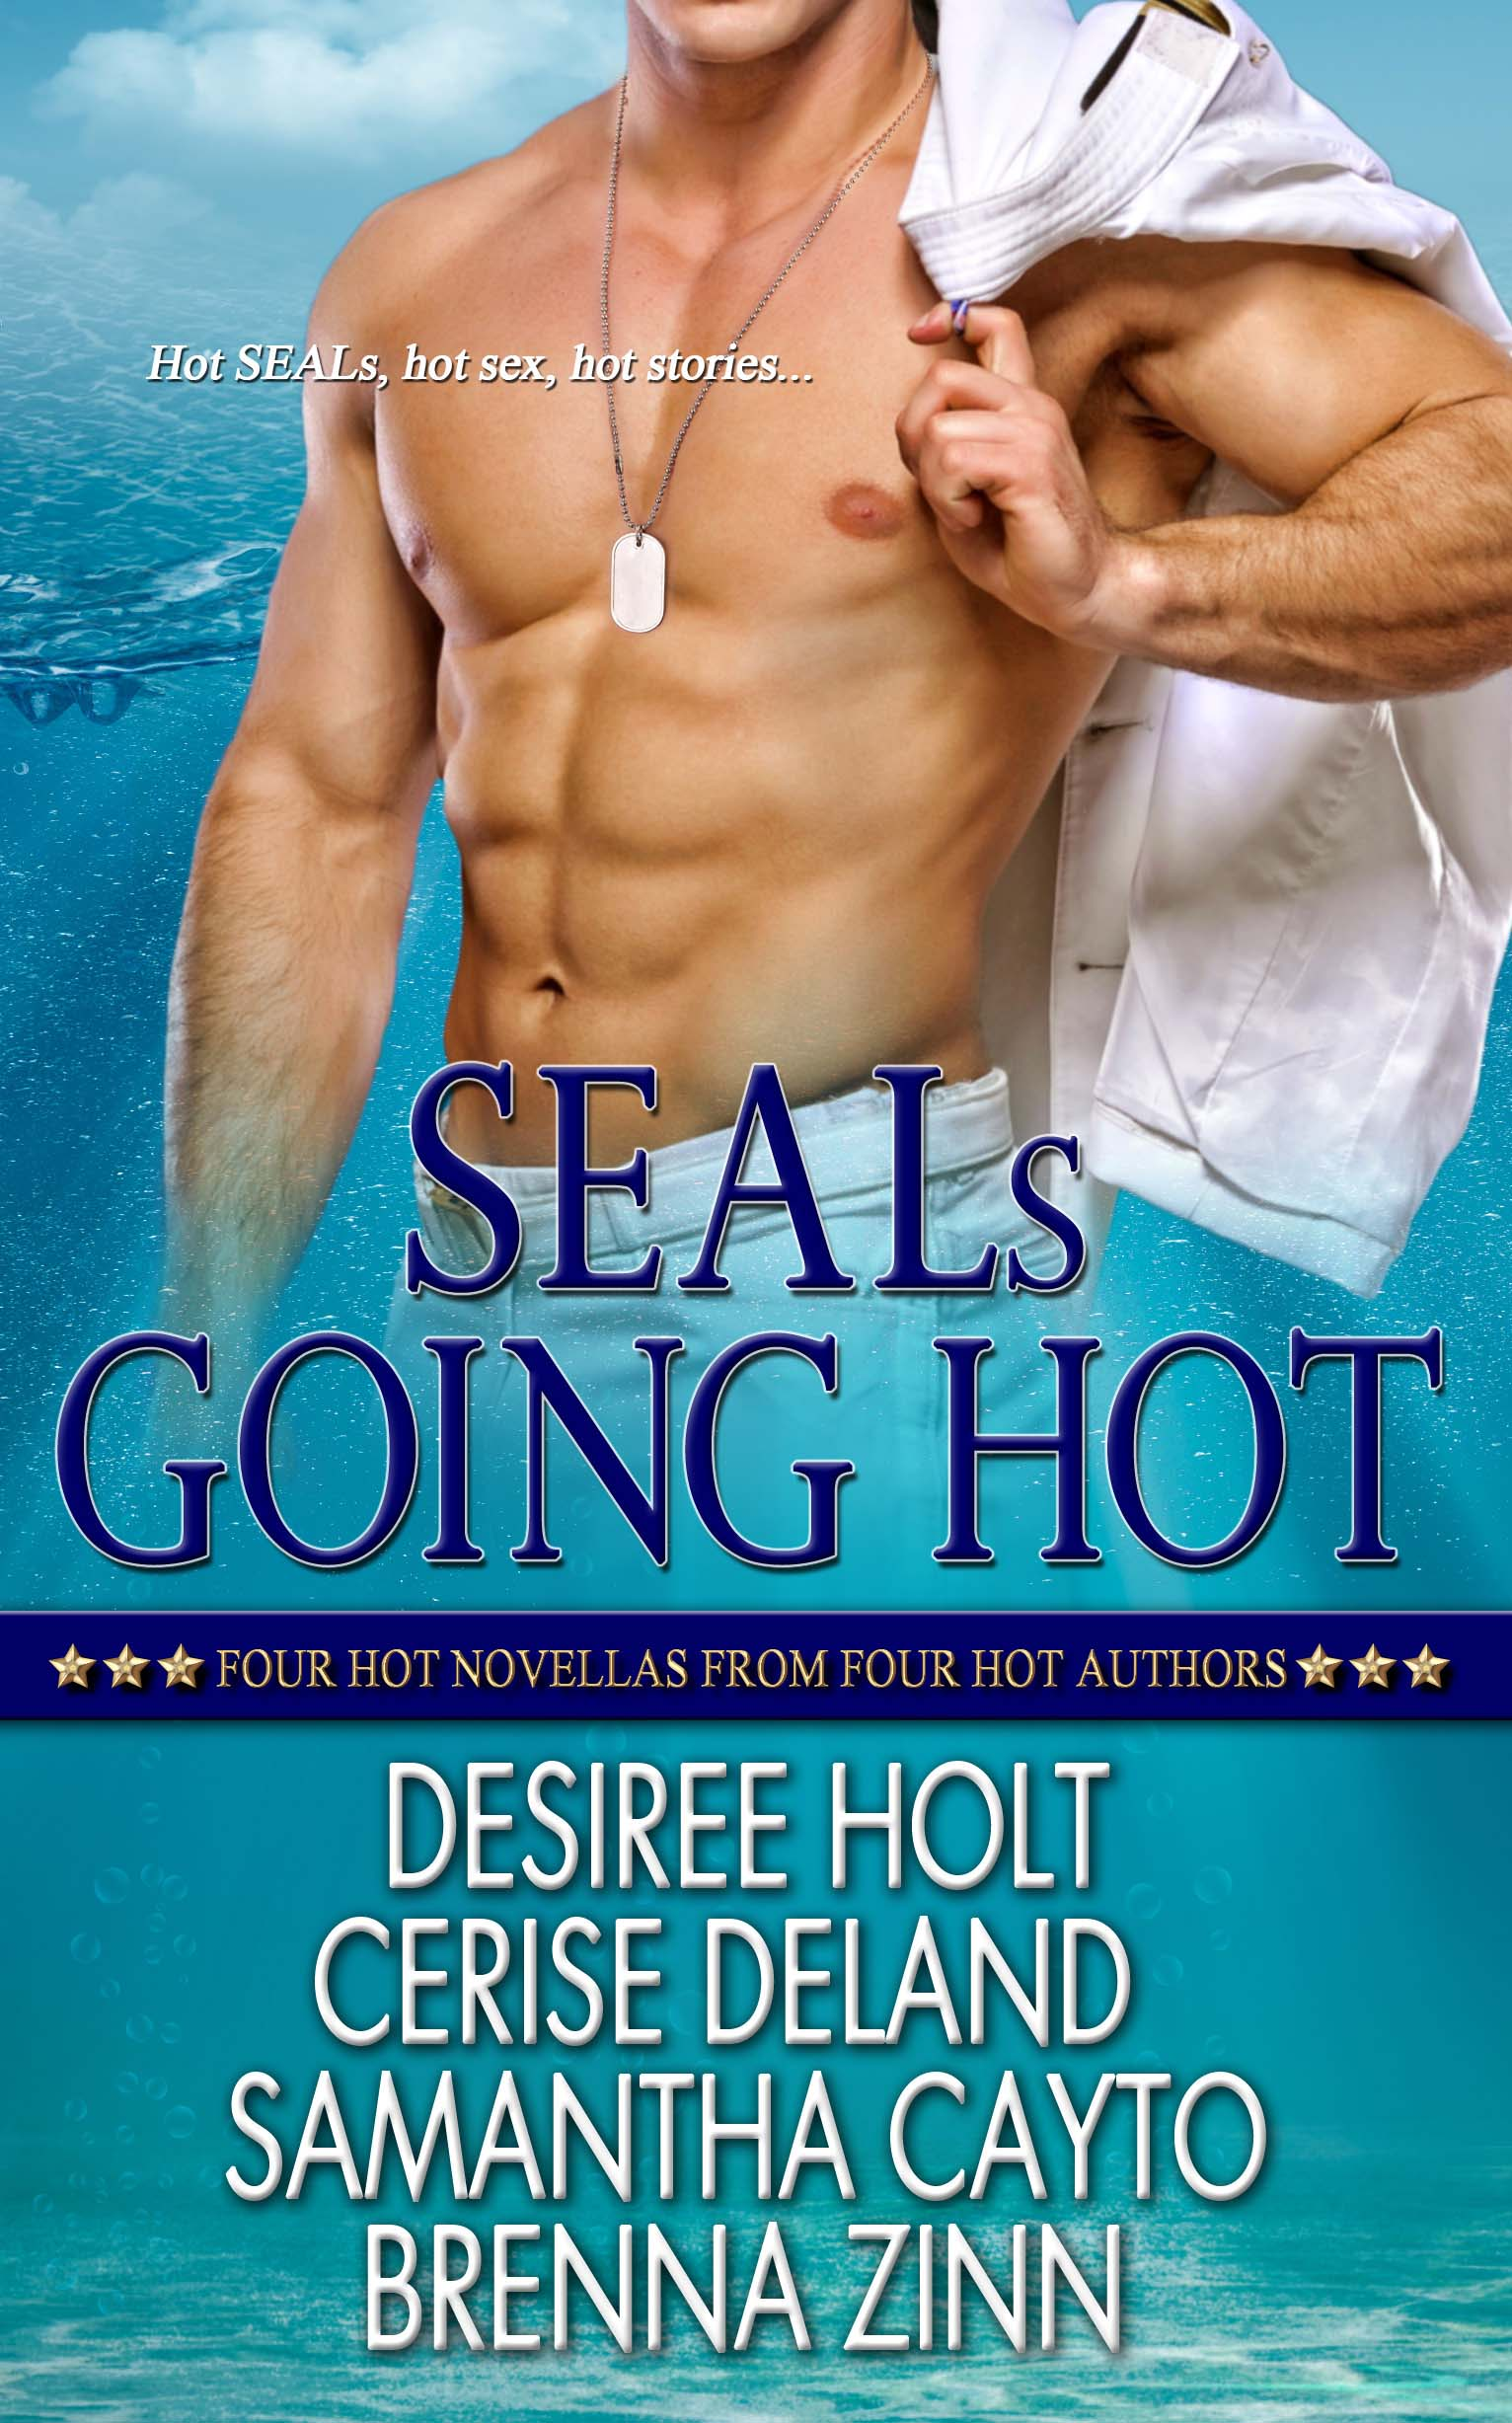 SEALs are definitely going hot!